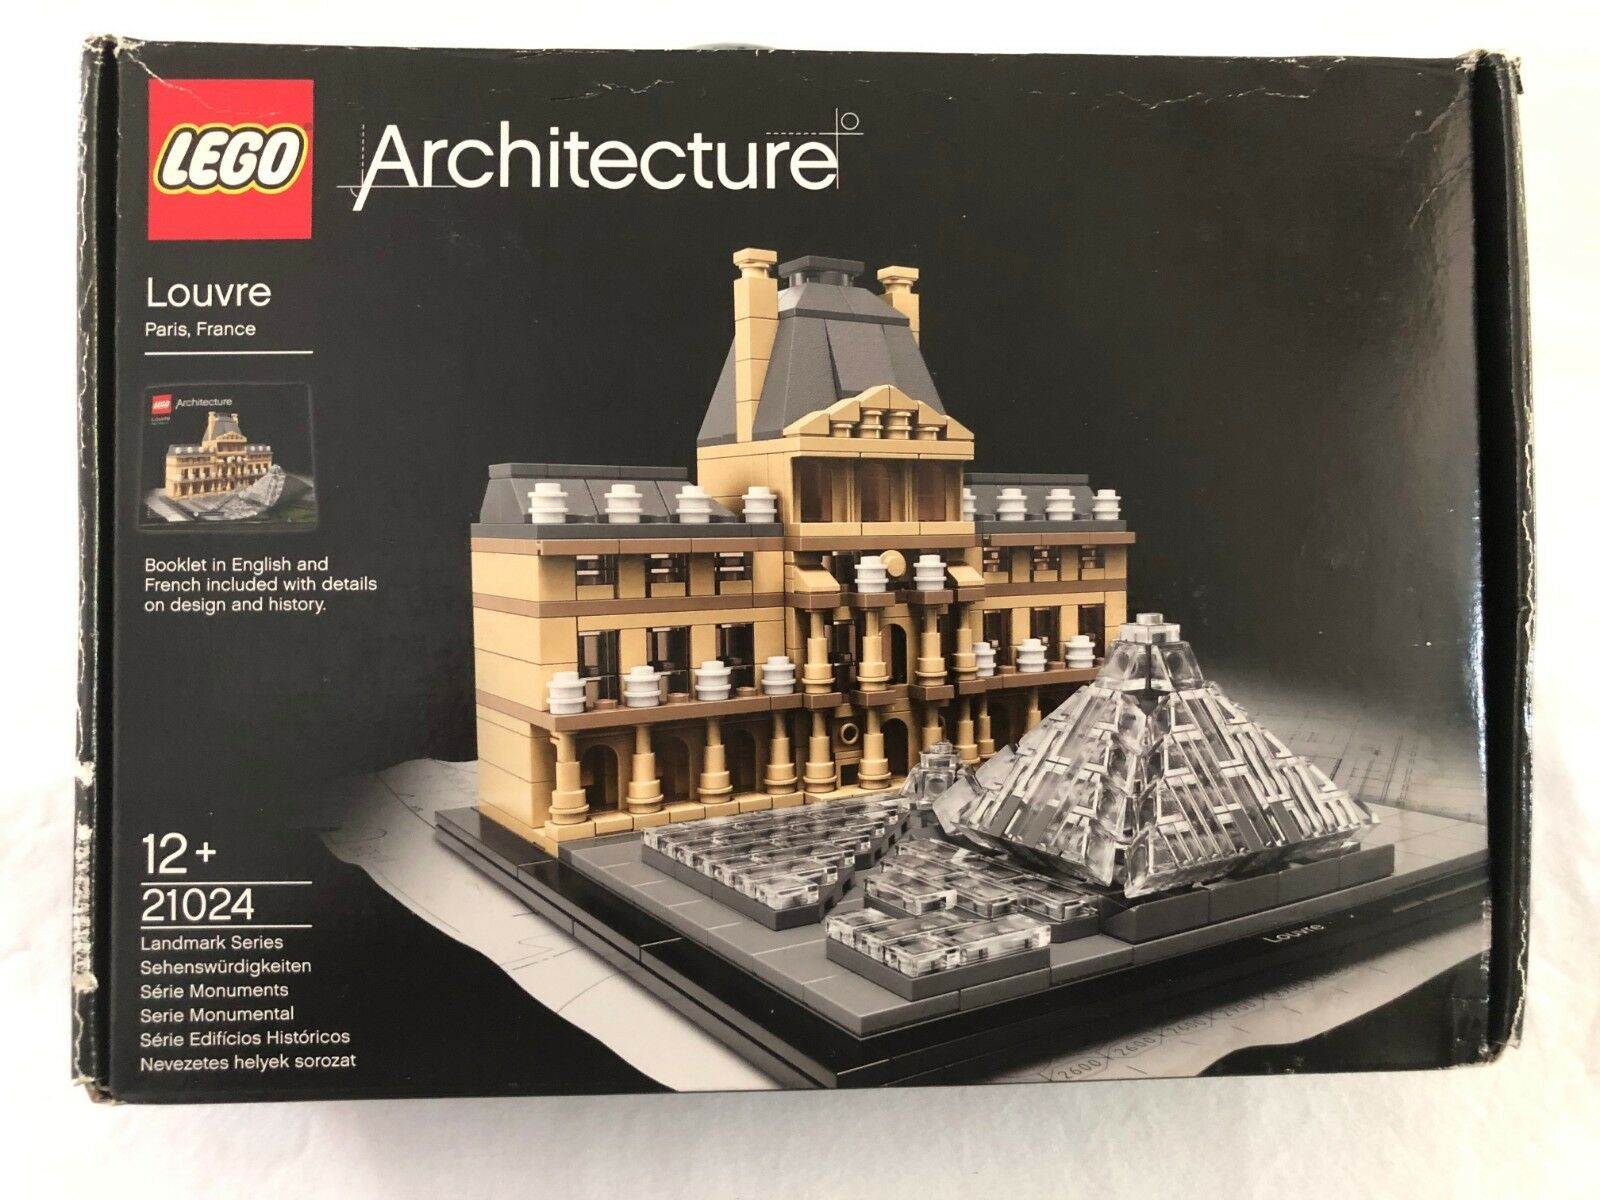 Rarity and htf lego 21024 Building Louvre - Factory sellated